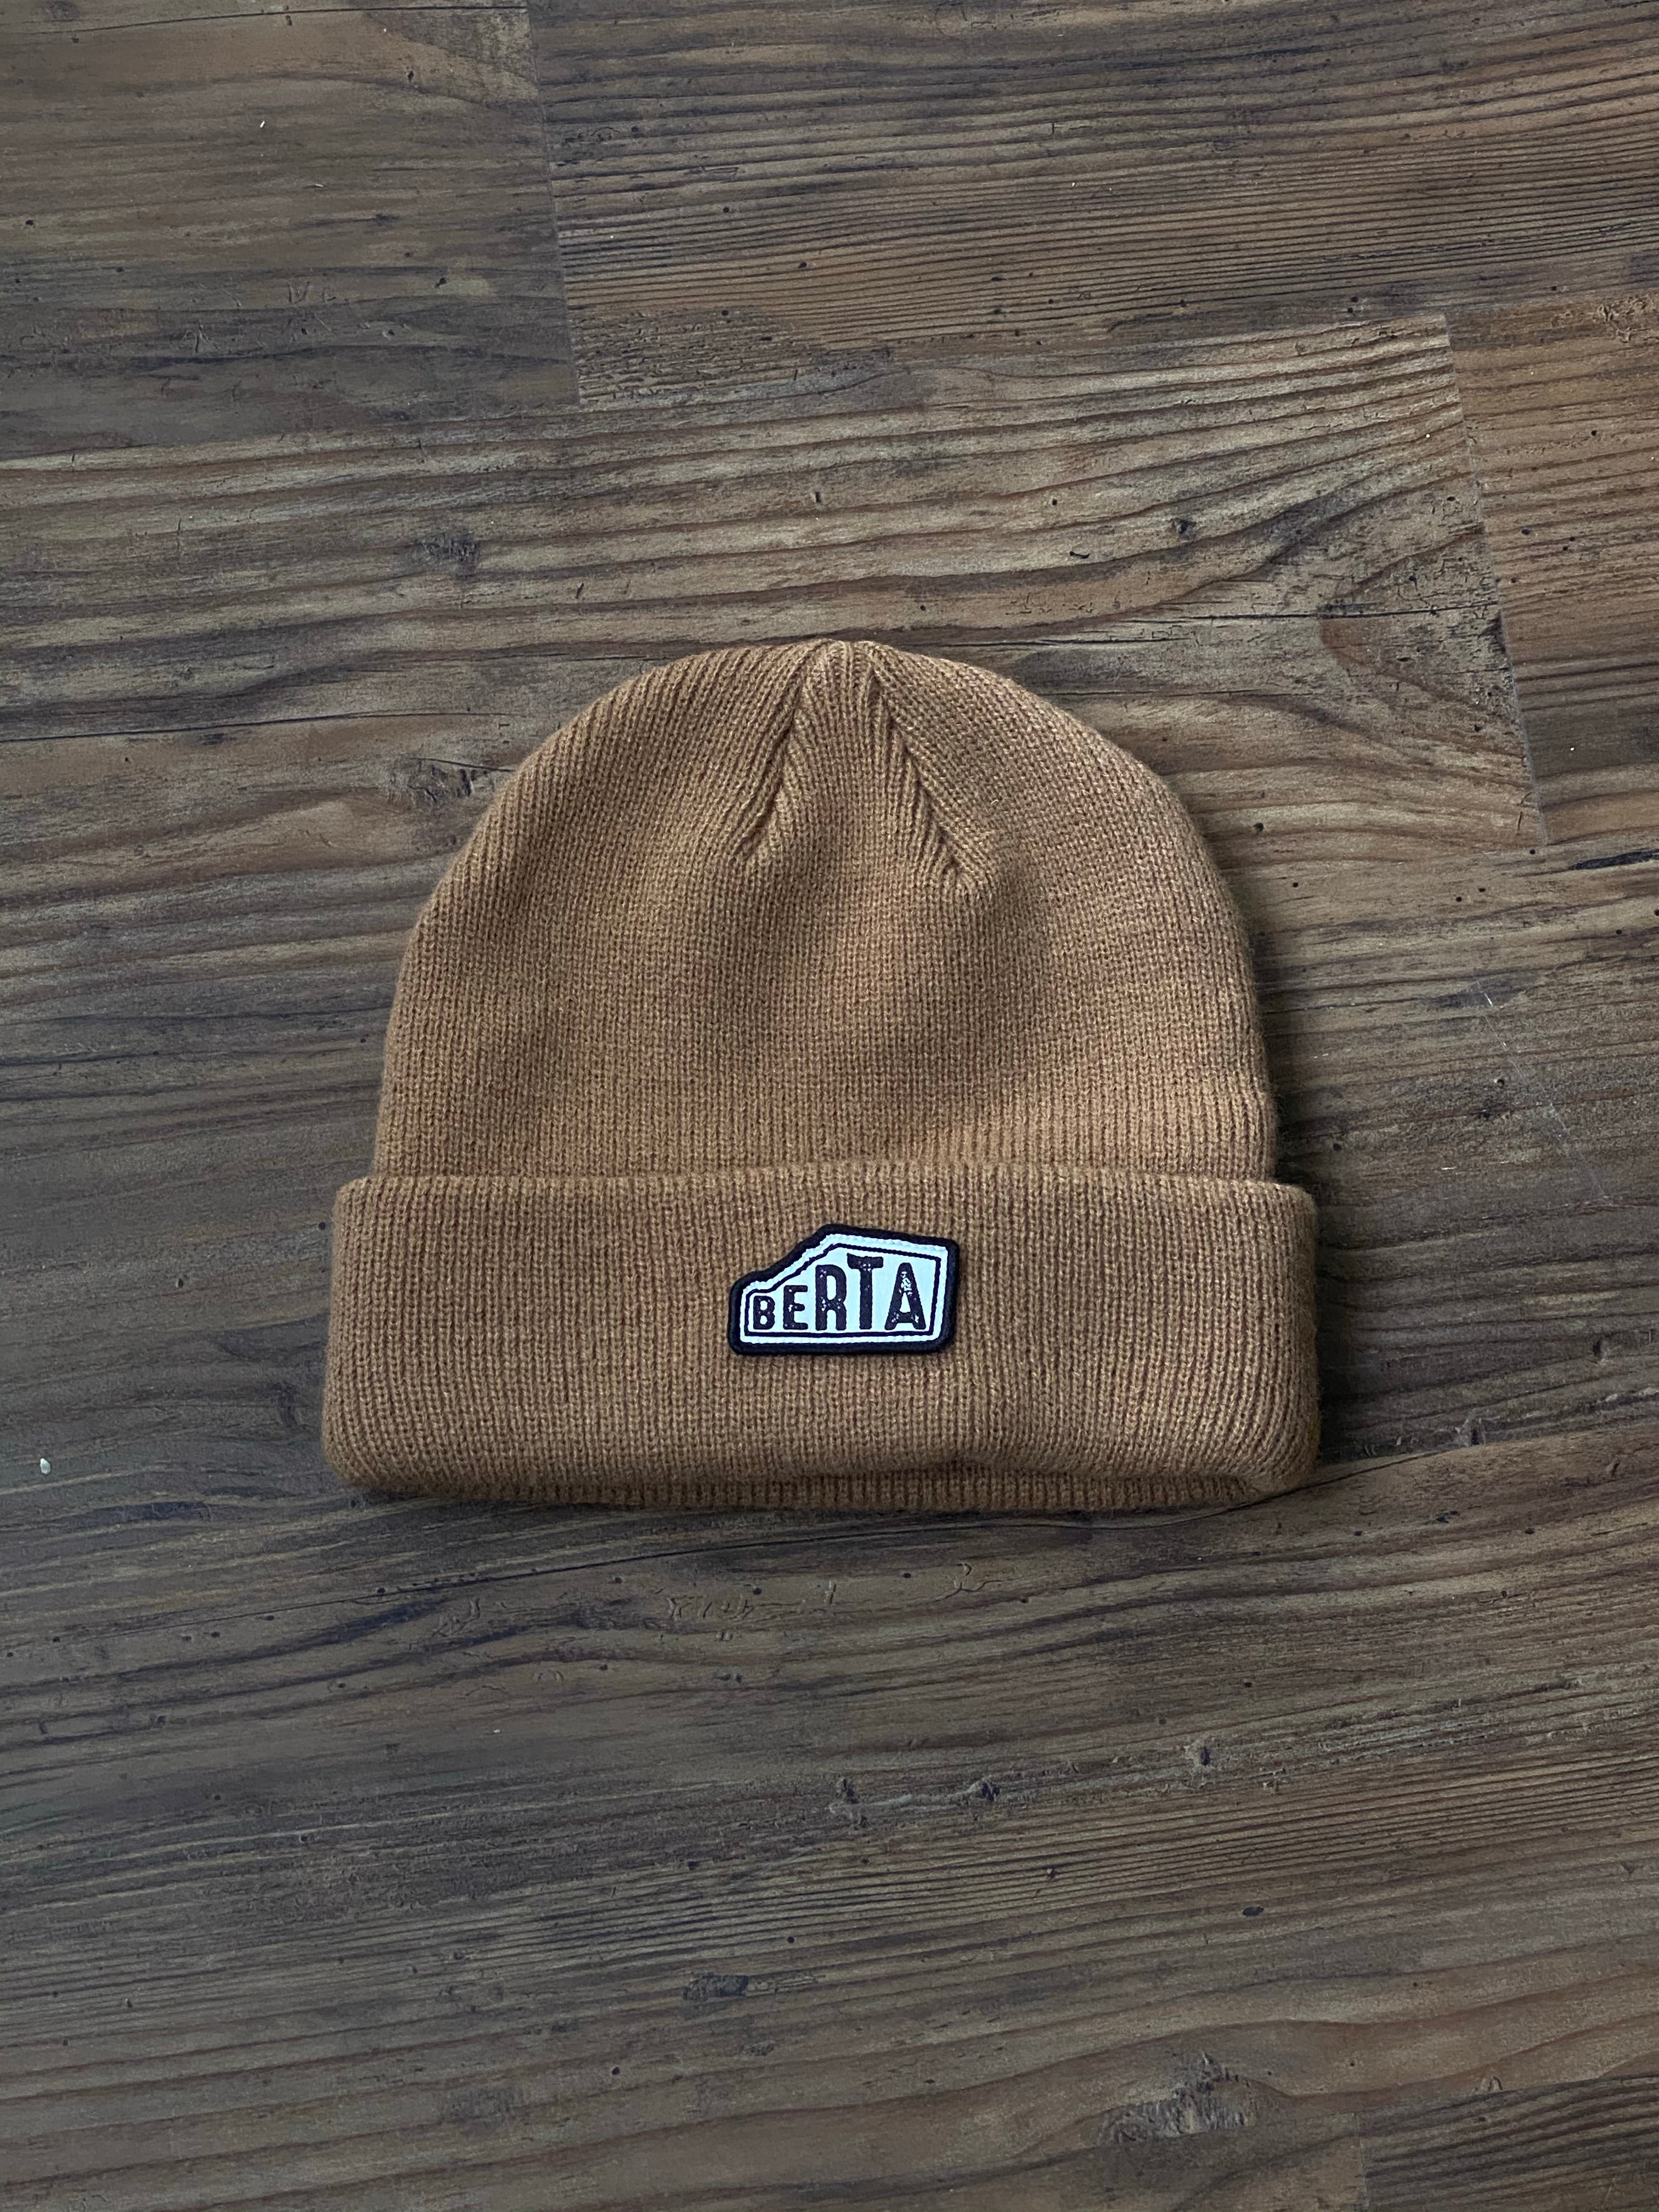 Berta Cuffed Toque | Brouhaha Lid Co